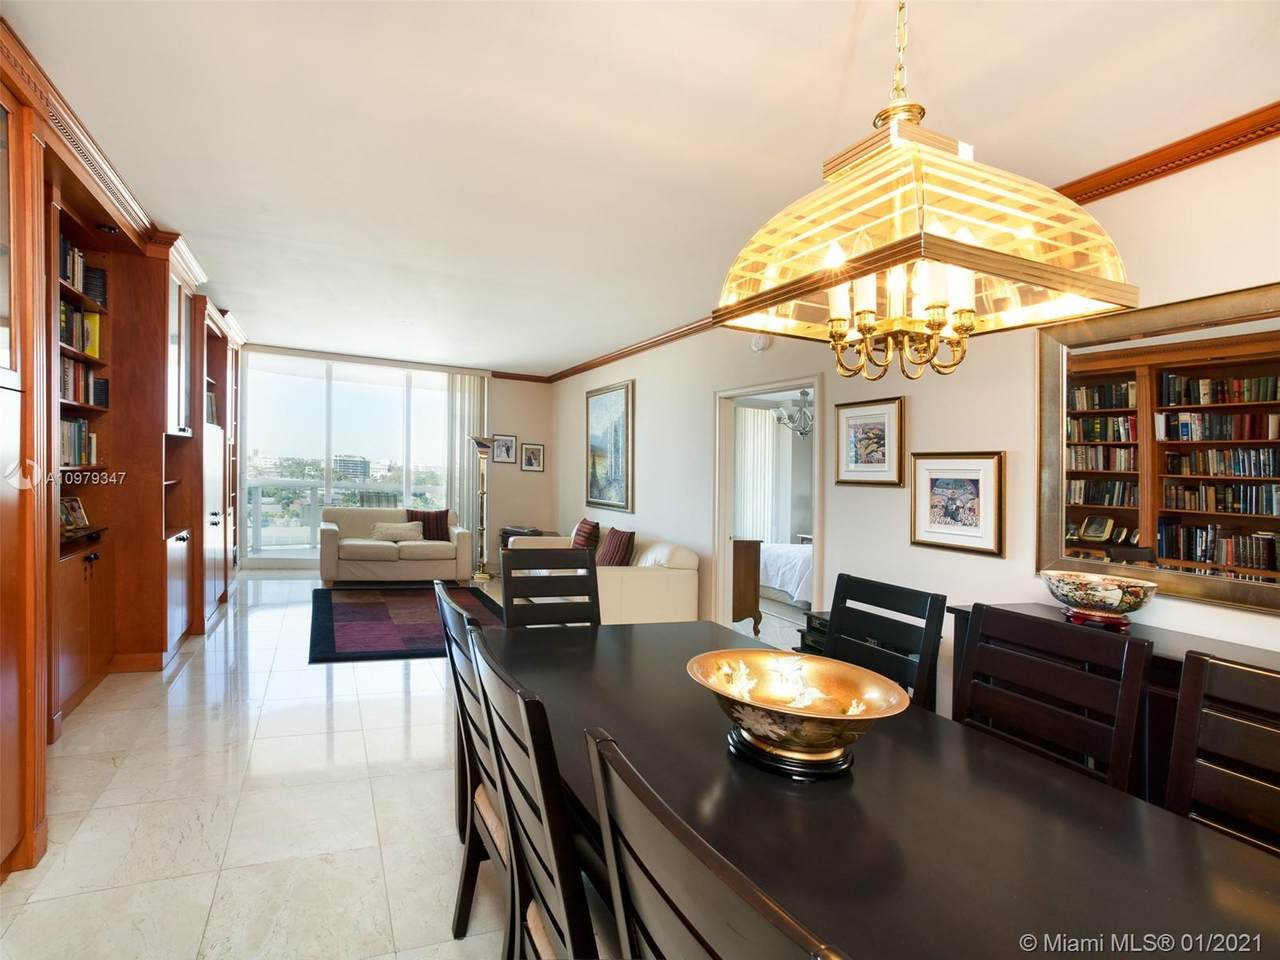 9559 Collins Ave - Photo 1